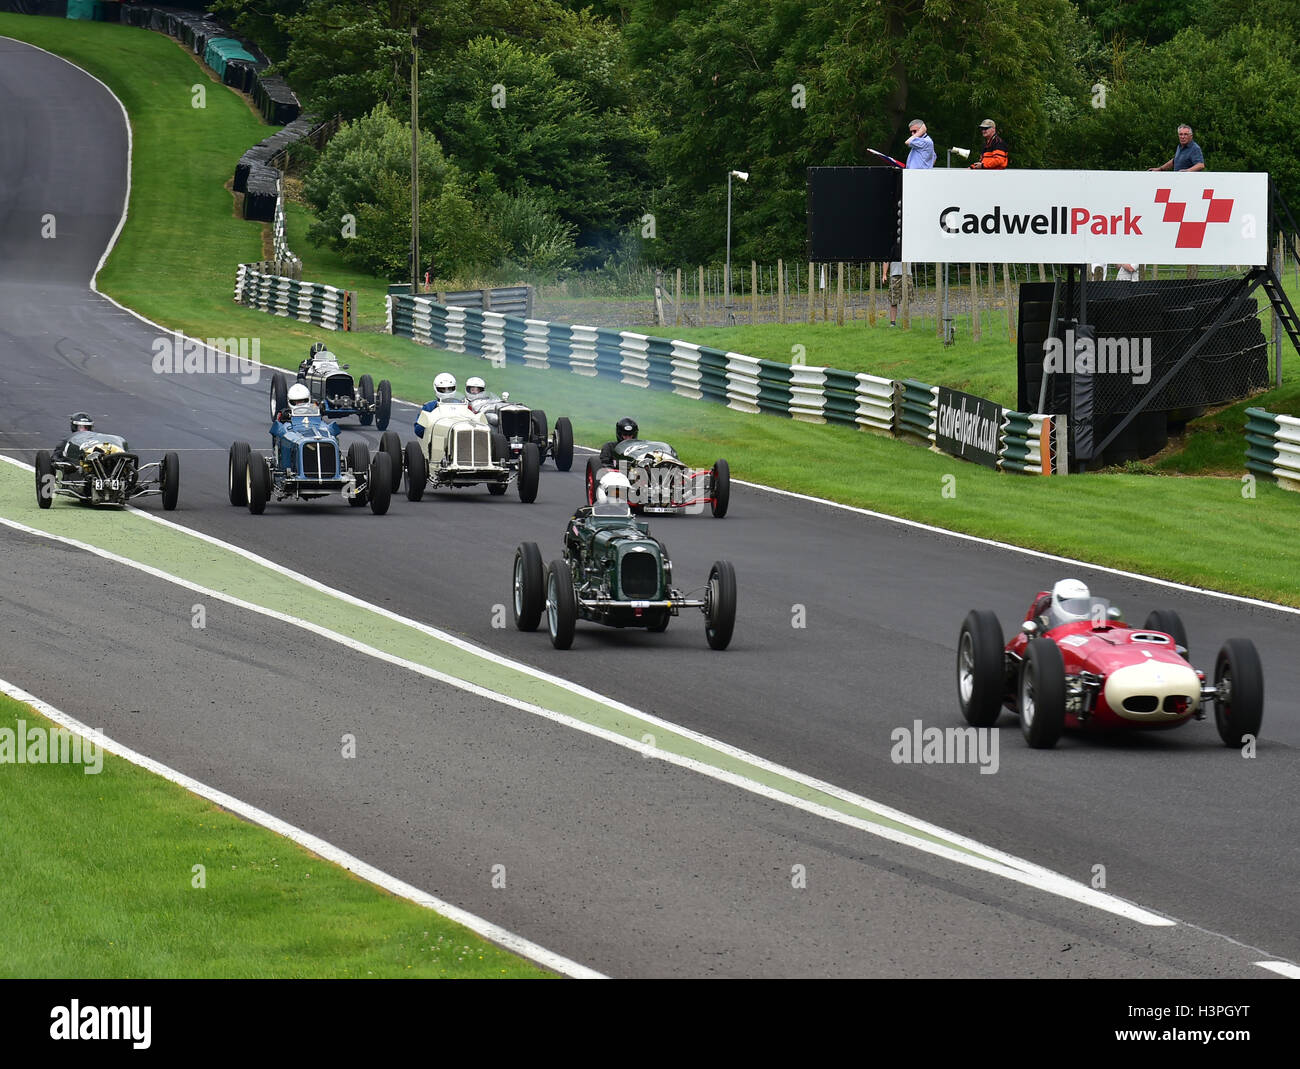 The start, Front engined pre-1961 racing cars, VSCC, Shuttleworth Trophy, Nuffield Trophy, Cadwell Park 24th July - Stock Image